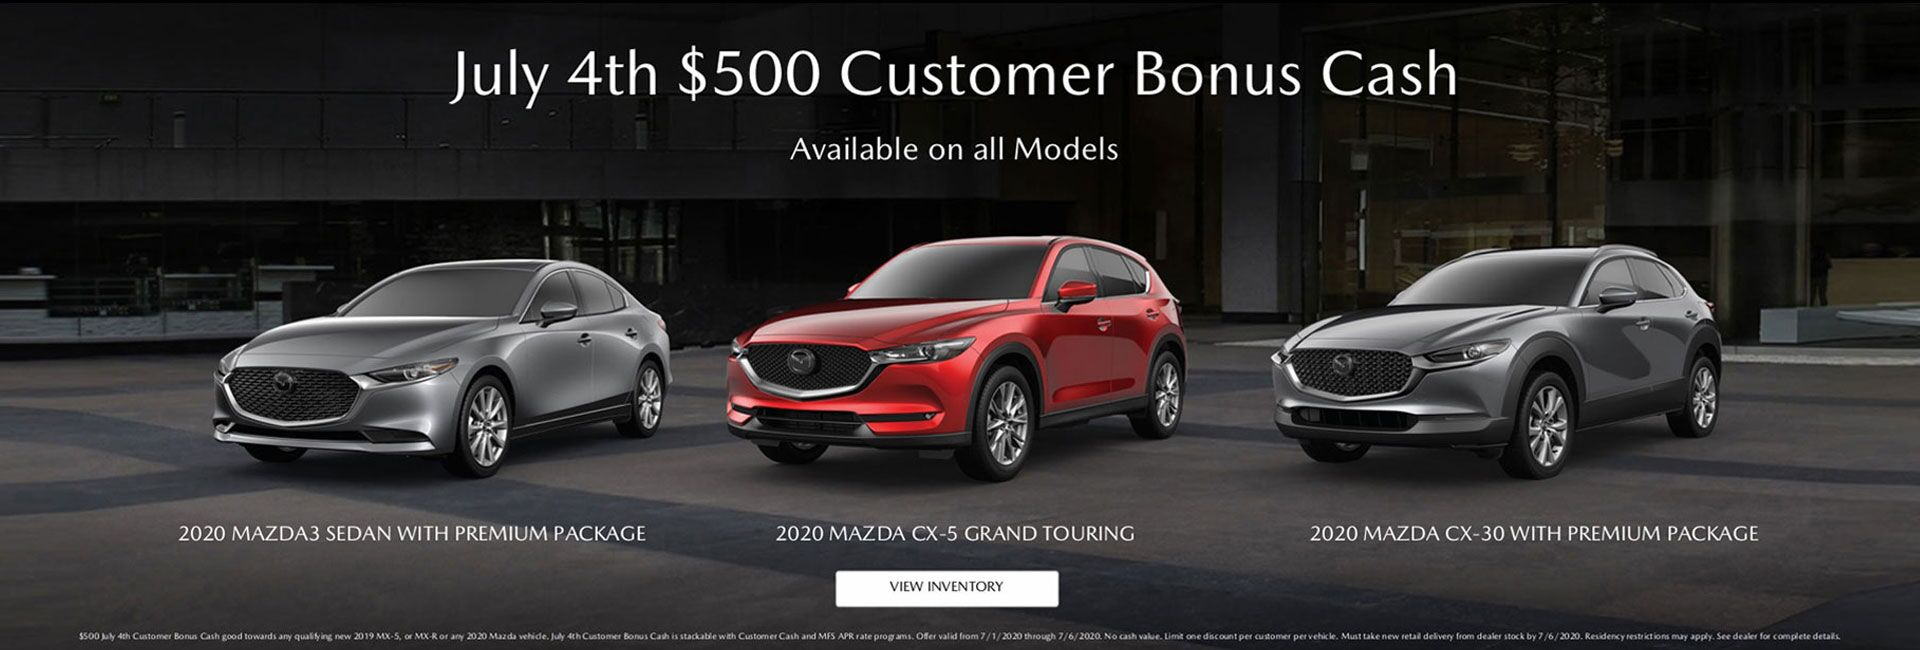 July 4th - Customer Bonus Cash